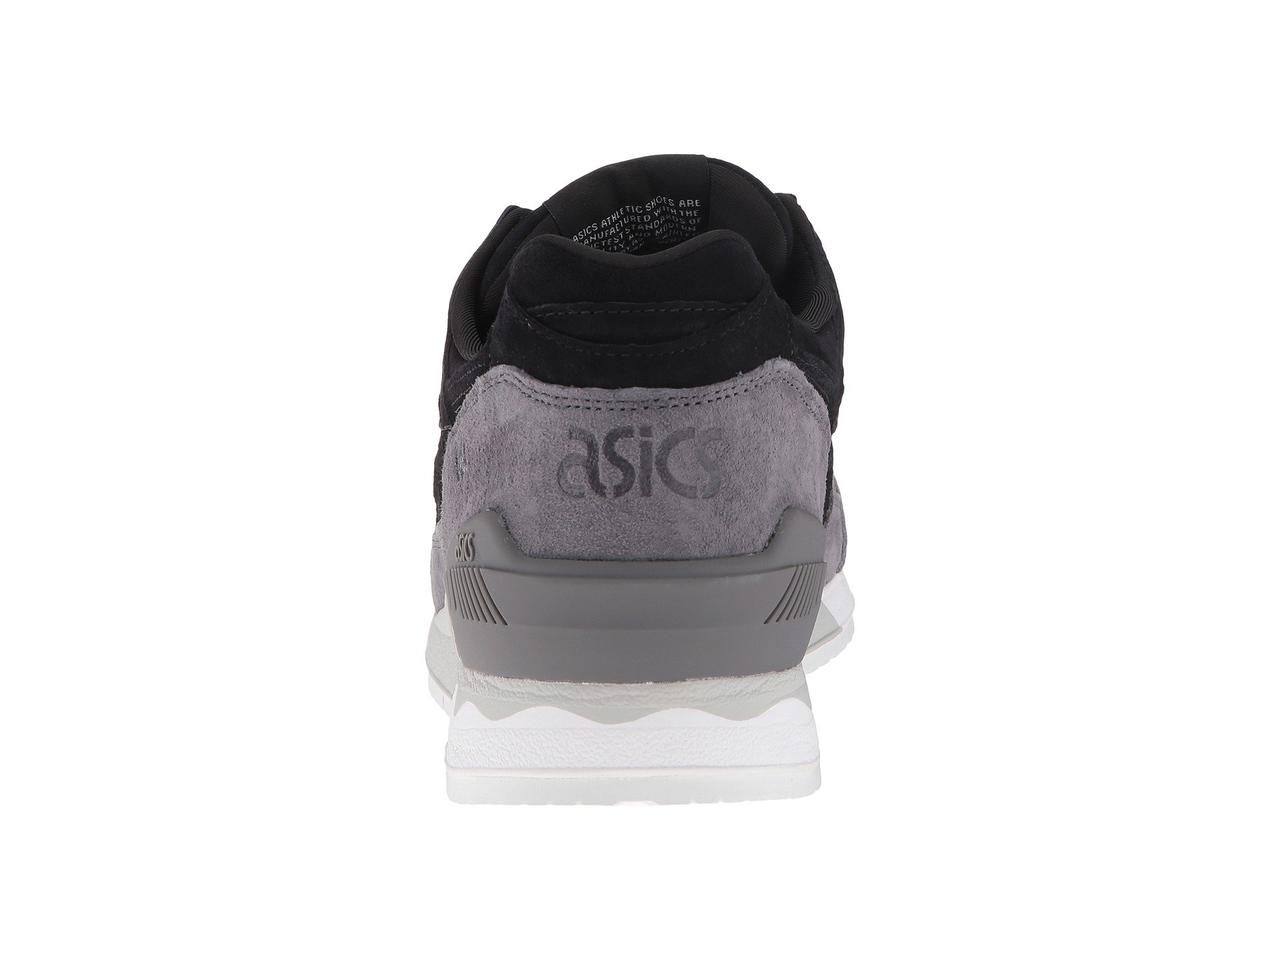 "Женские кроссовки Asics Gel Respector ""Mooncrater Pack"" Black, 40"